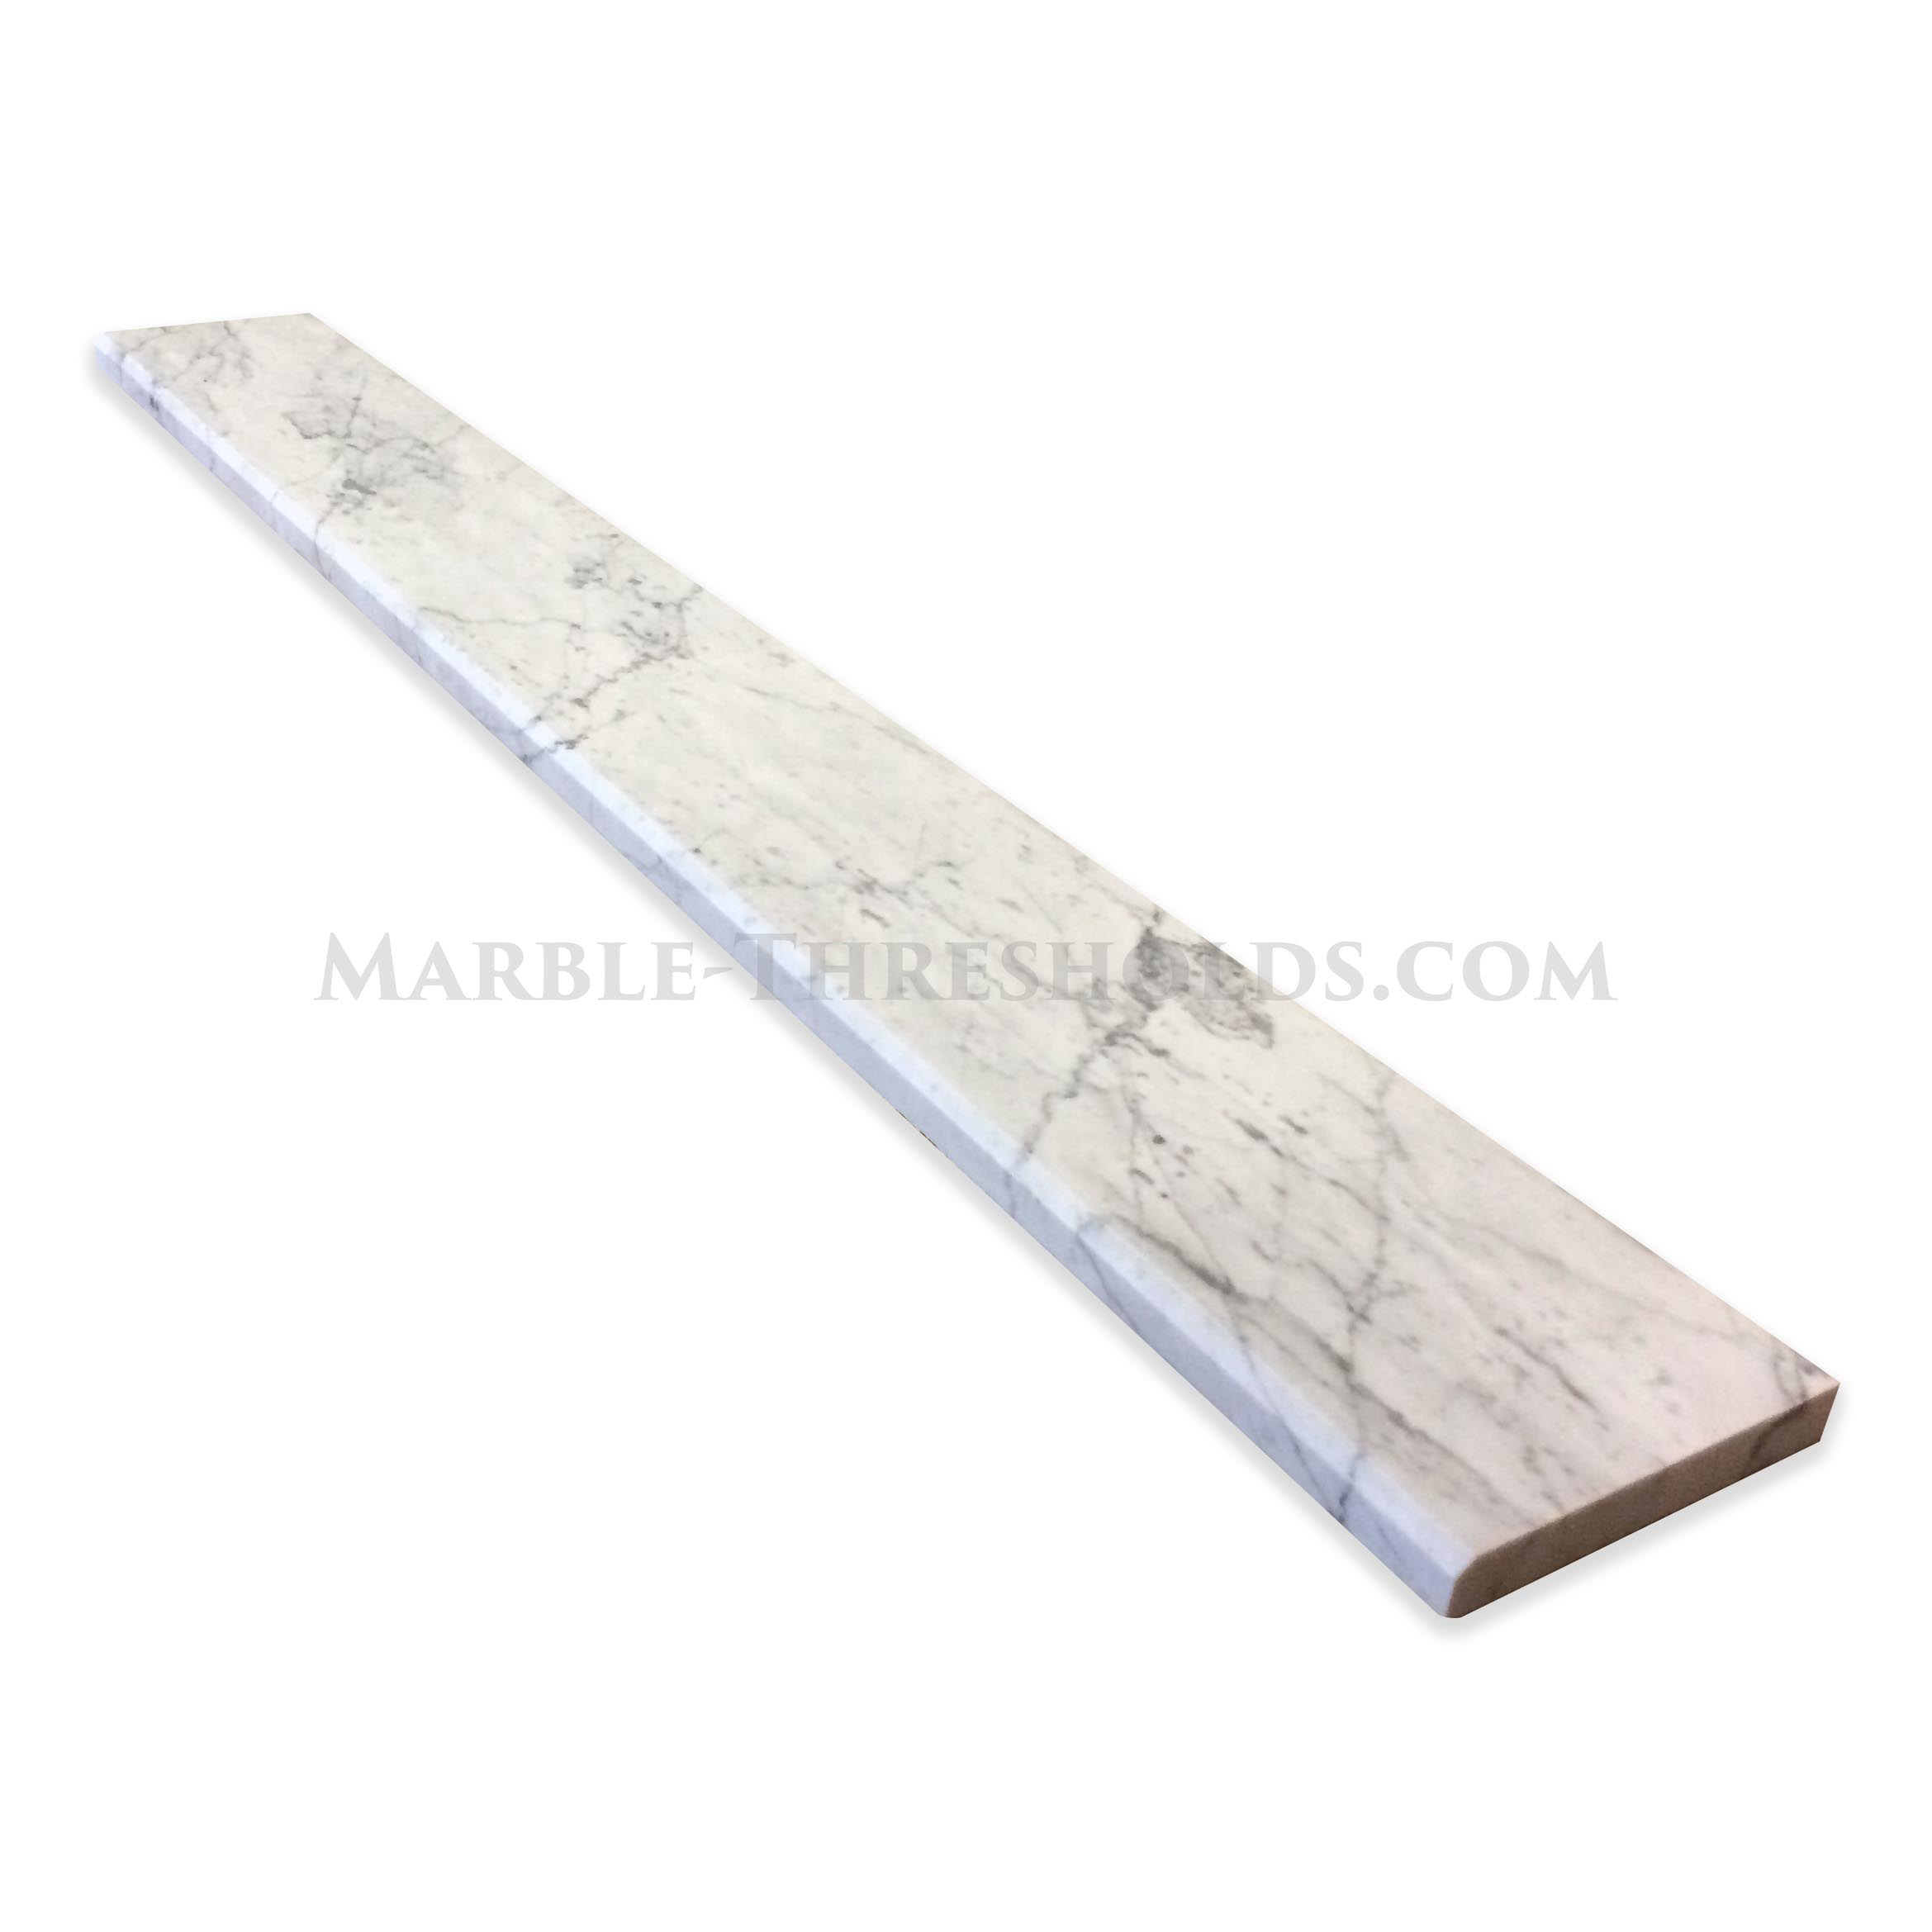 Carrara Threshold: Carrara White Marble Window Sills